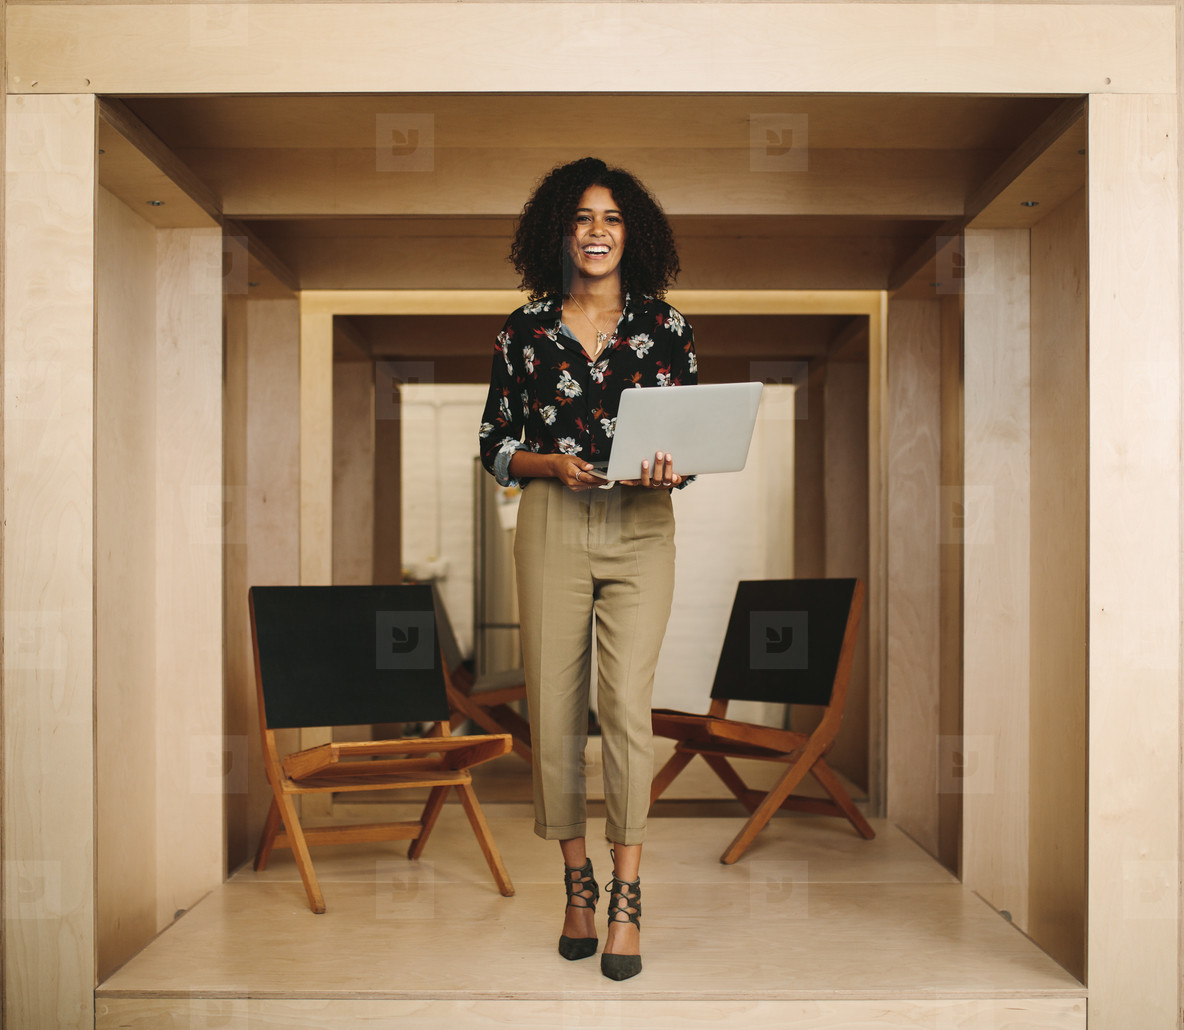 Portrait of a smiling woman entrepreneur standing in office hold